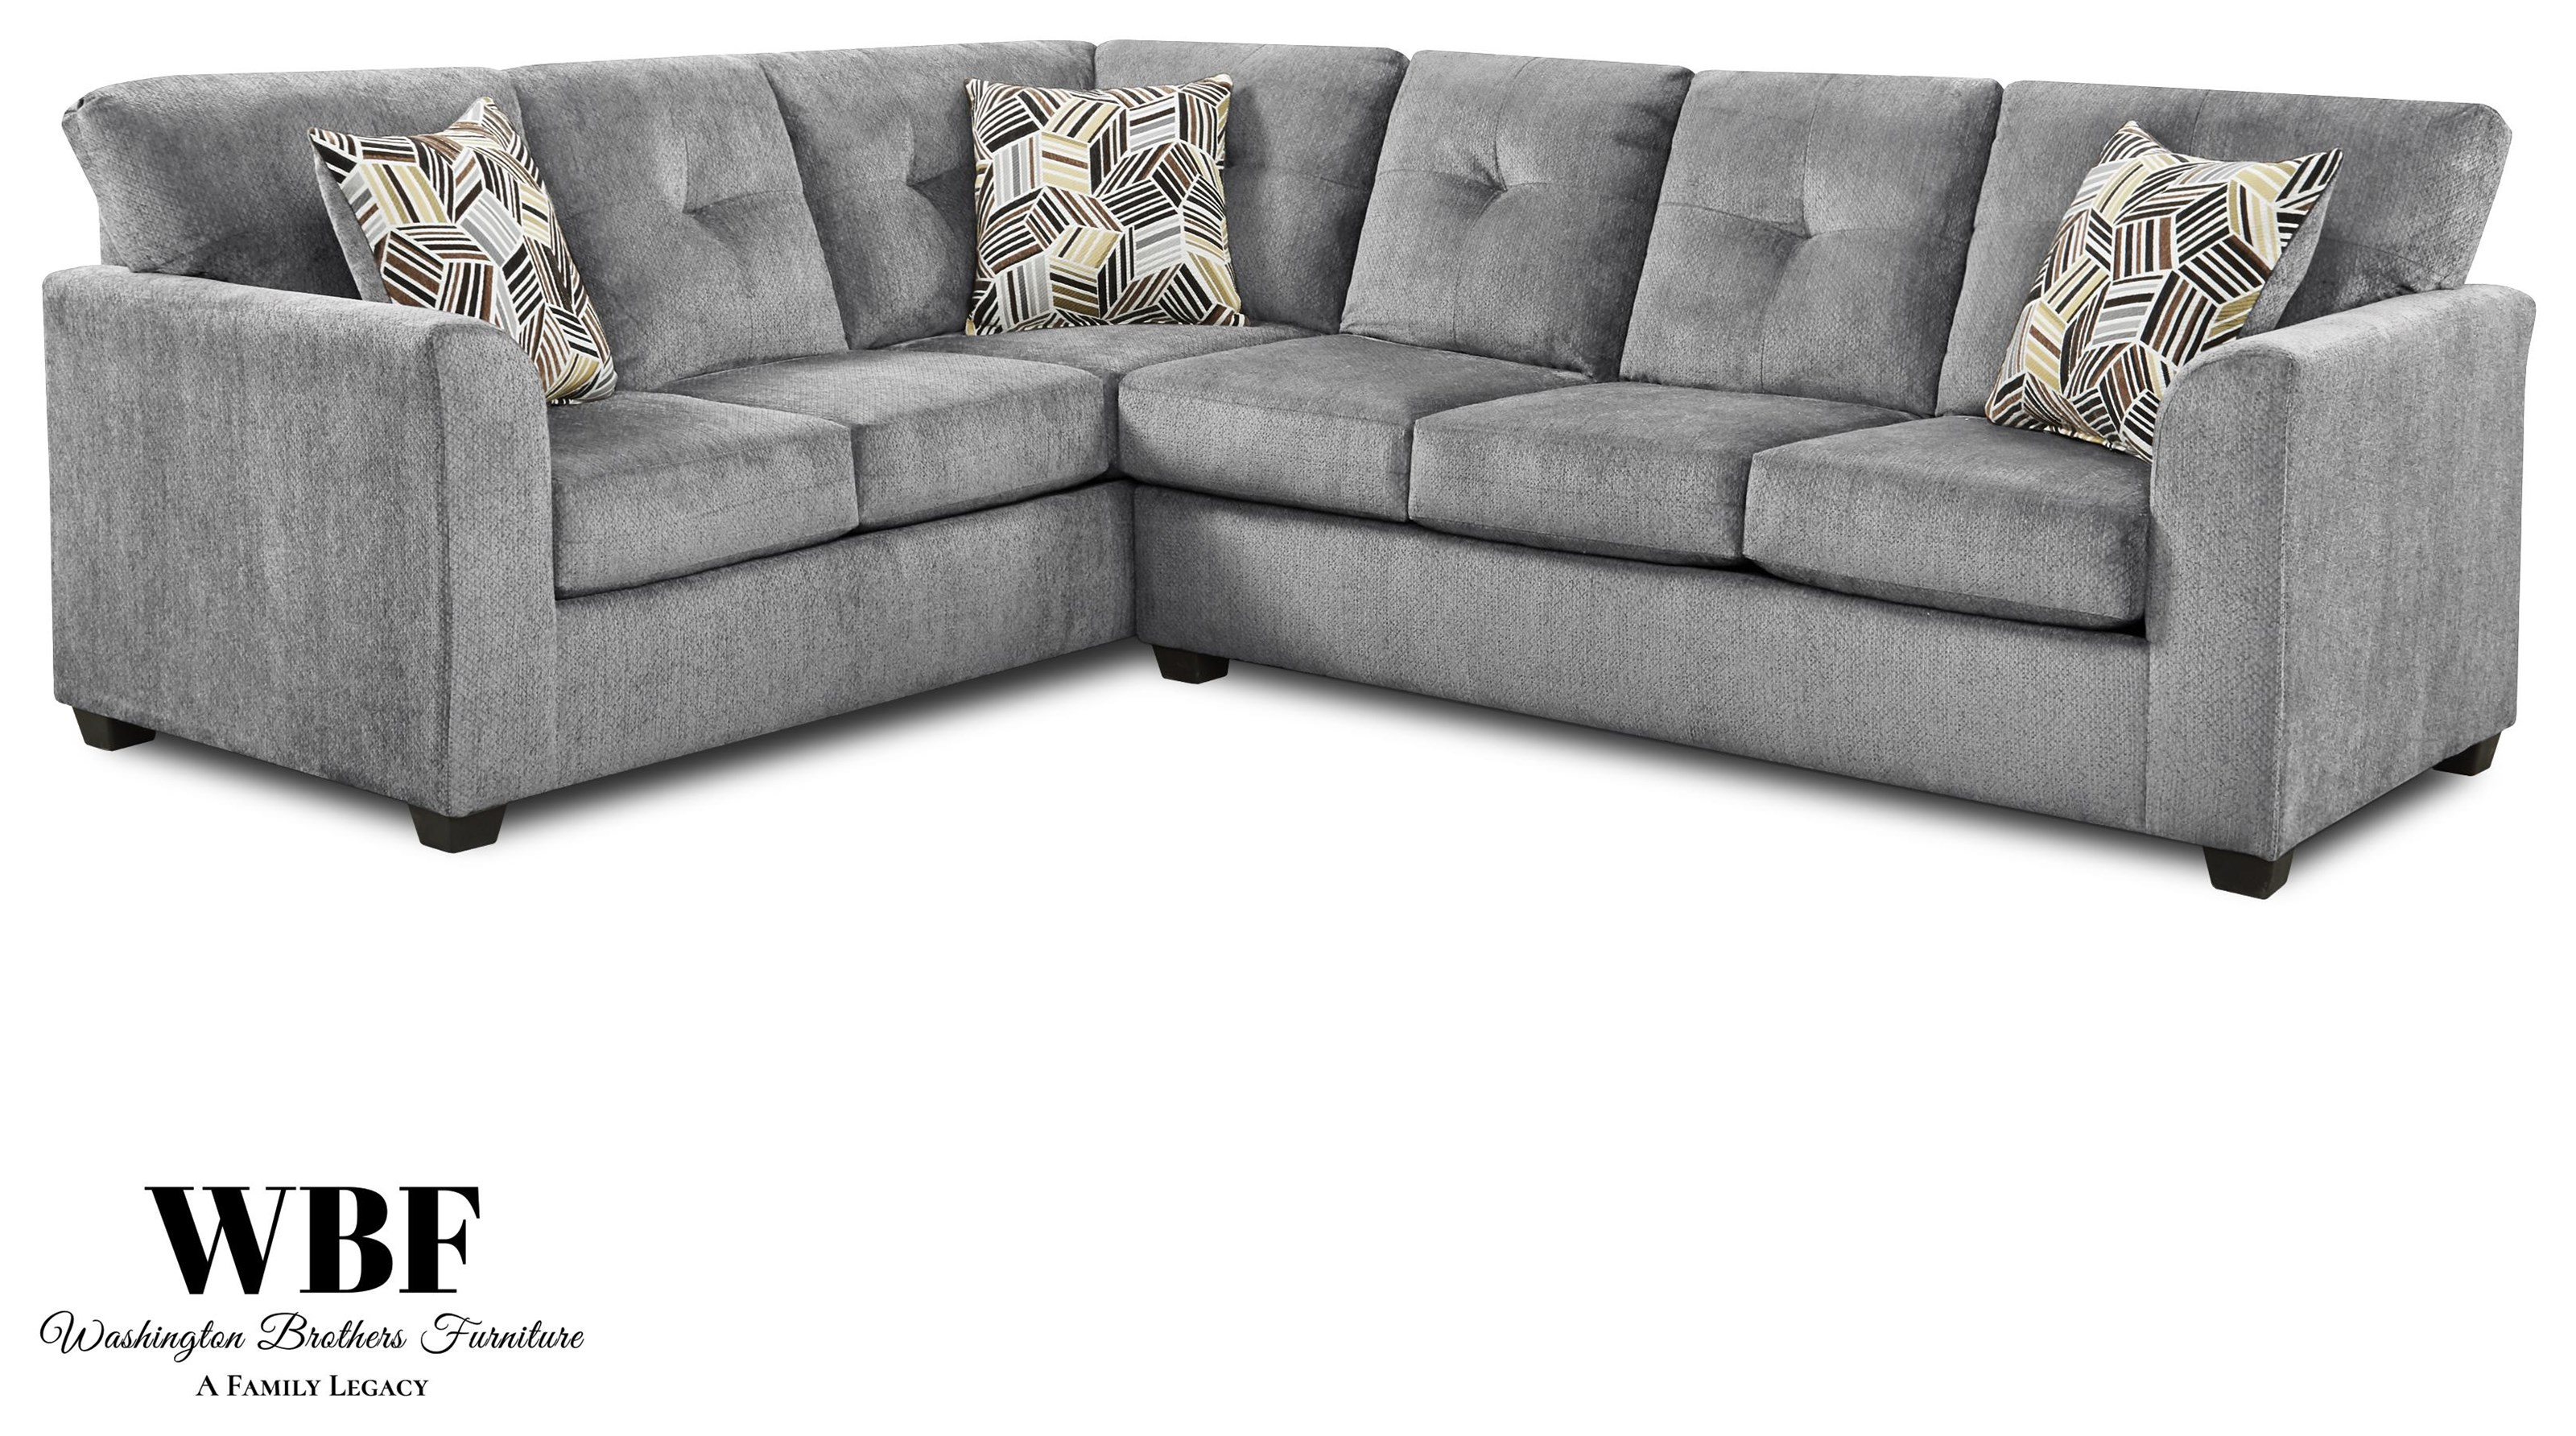 3007-3008 Two Piece Sectional by Washington Brothers Furniture at Furniture Fair - North Carolina